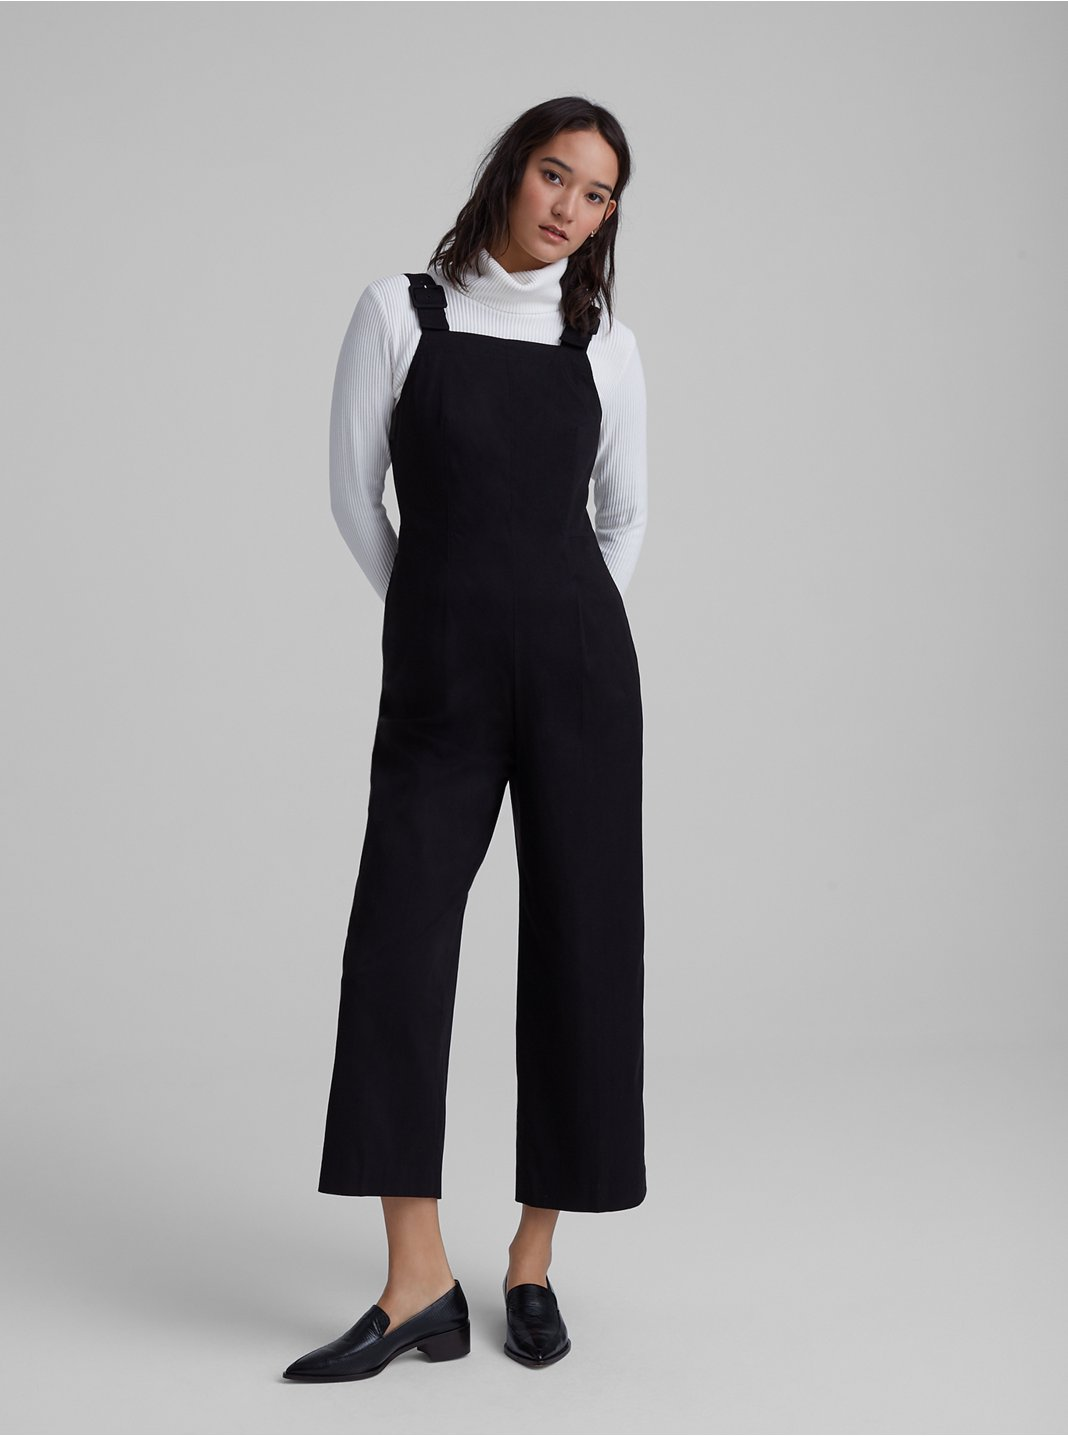 Self-Buckle Jumpsuit